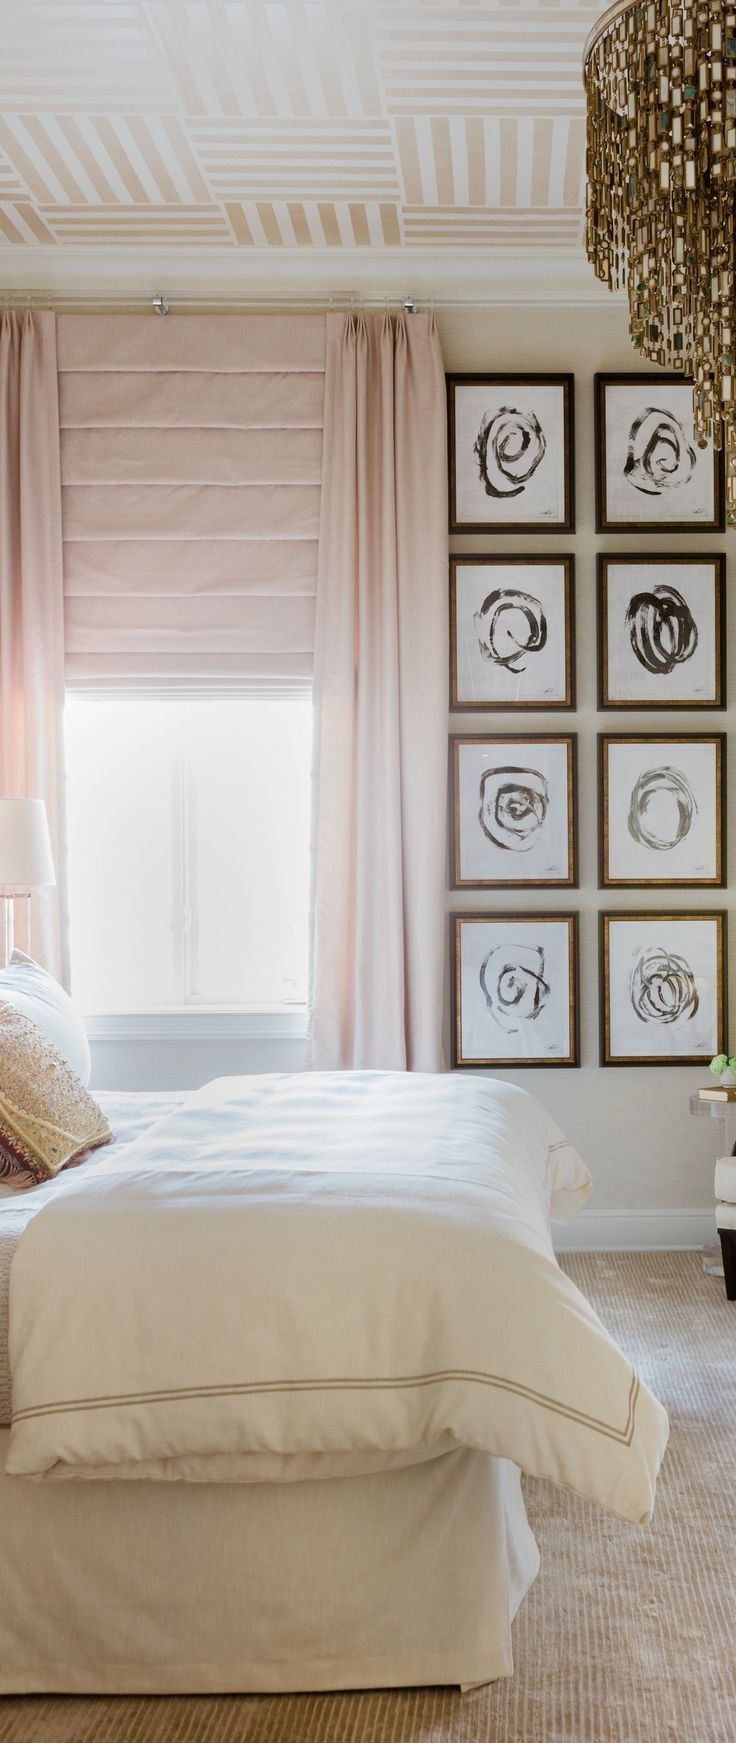 Bedroom design ideas bedroom with gallery wall this feminine and